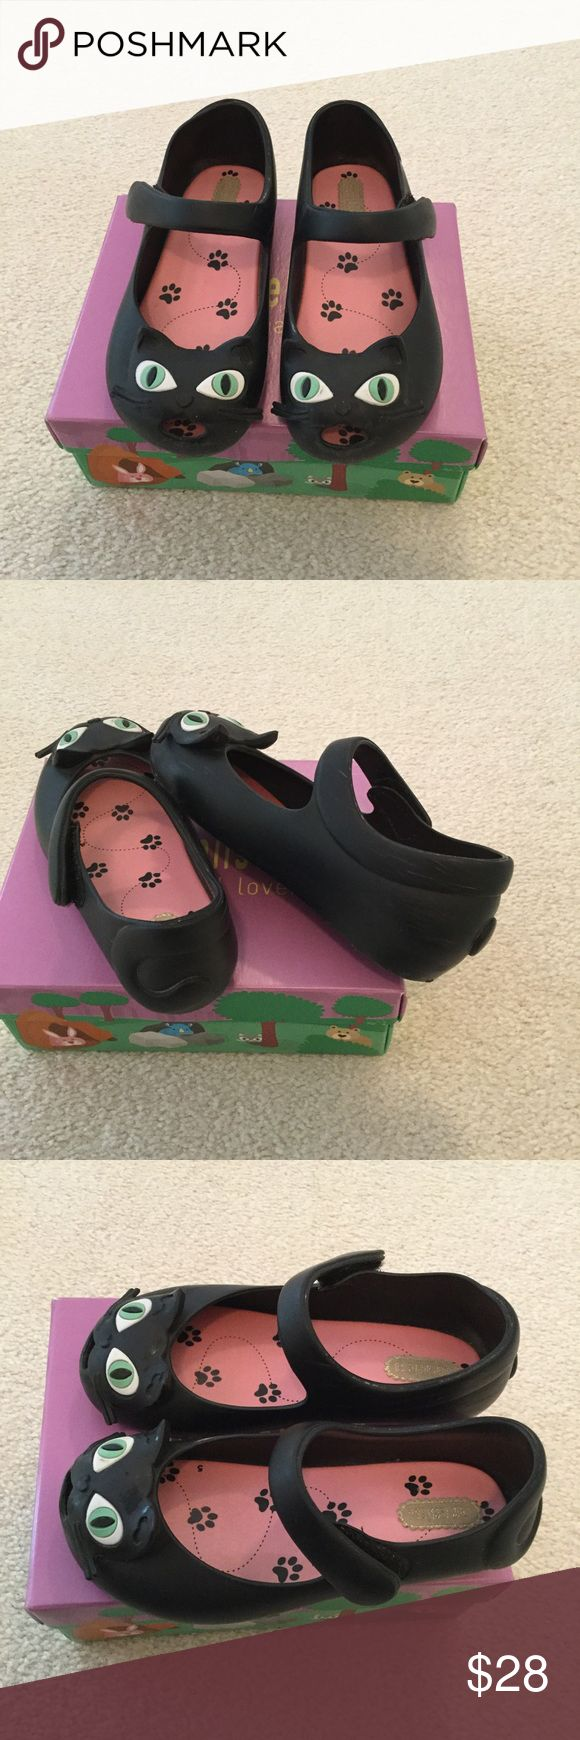 Mini melissa cat shoes Sz10 GUC! Some scuffs and scratches all over, insole is clean. Still lots of life left. Comes with original box. mini mellisa Shoes Dress Shoes